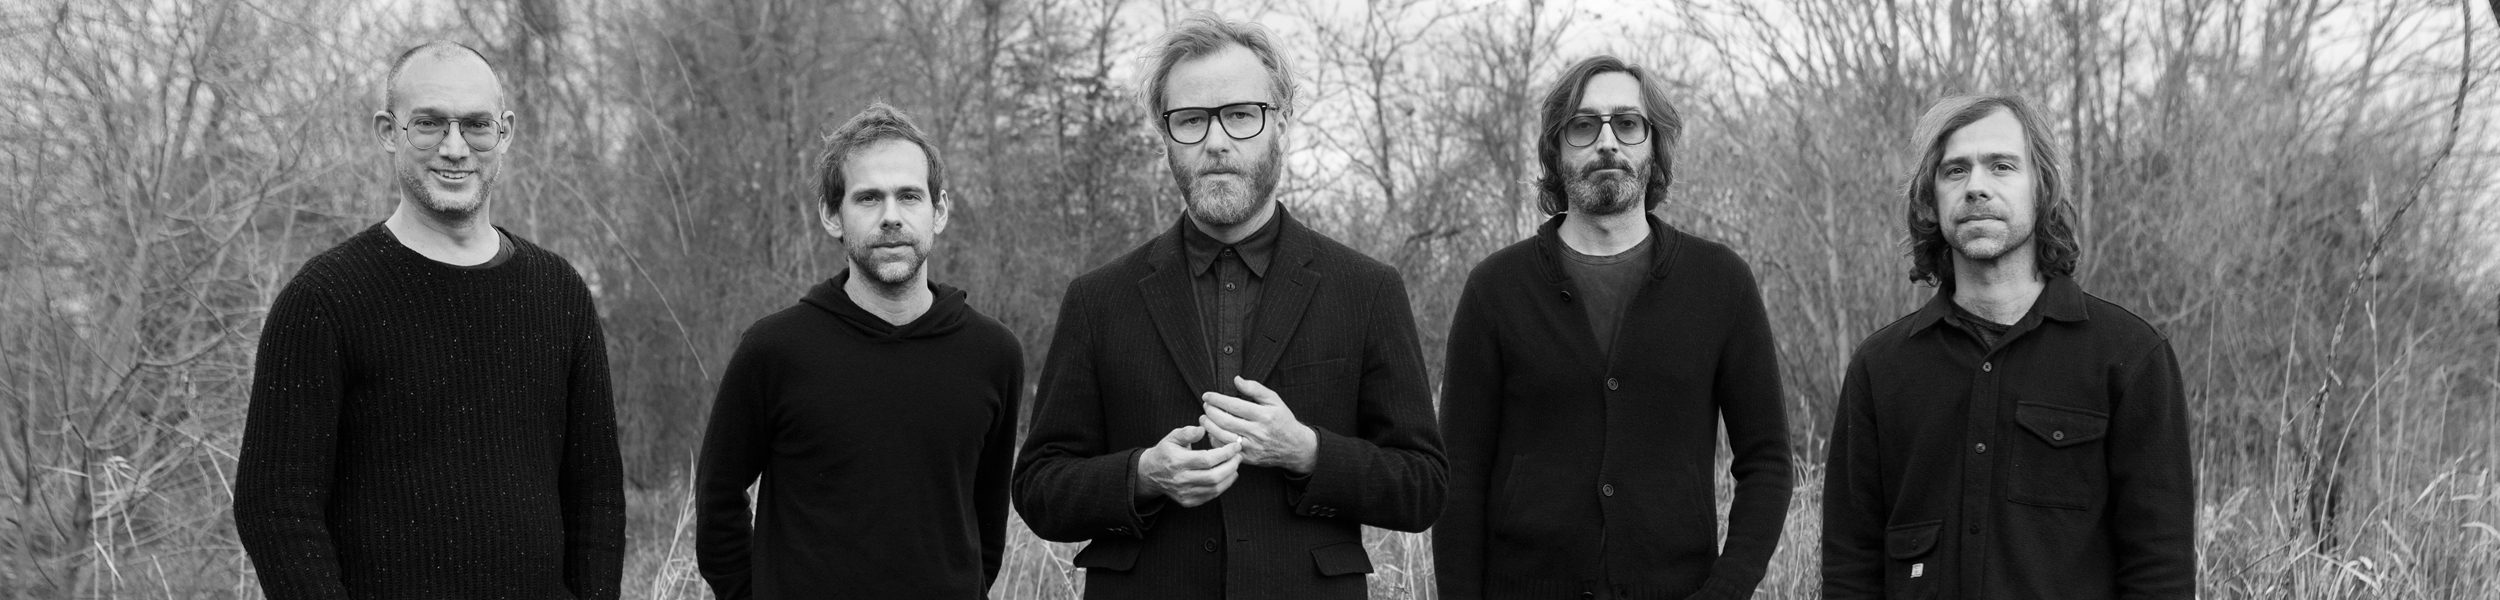 The National - title